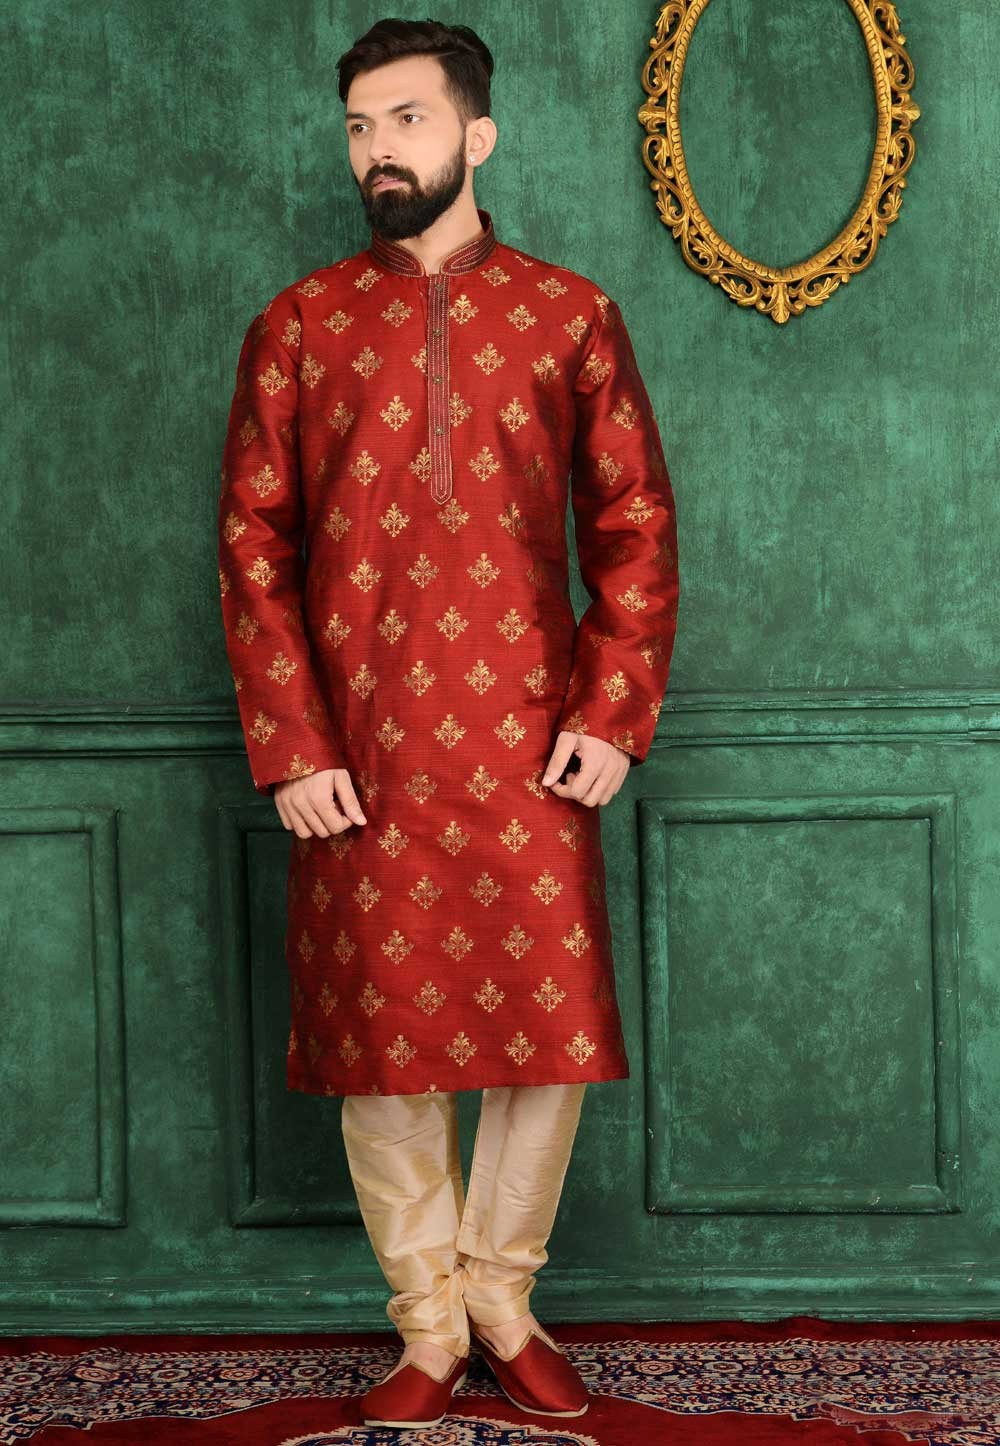 Men's Exquisite Raglan Sleeves Maroon Color Readymade Kurta Pajama.